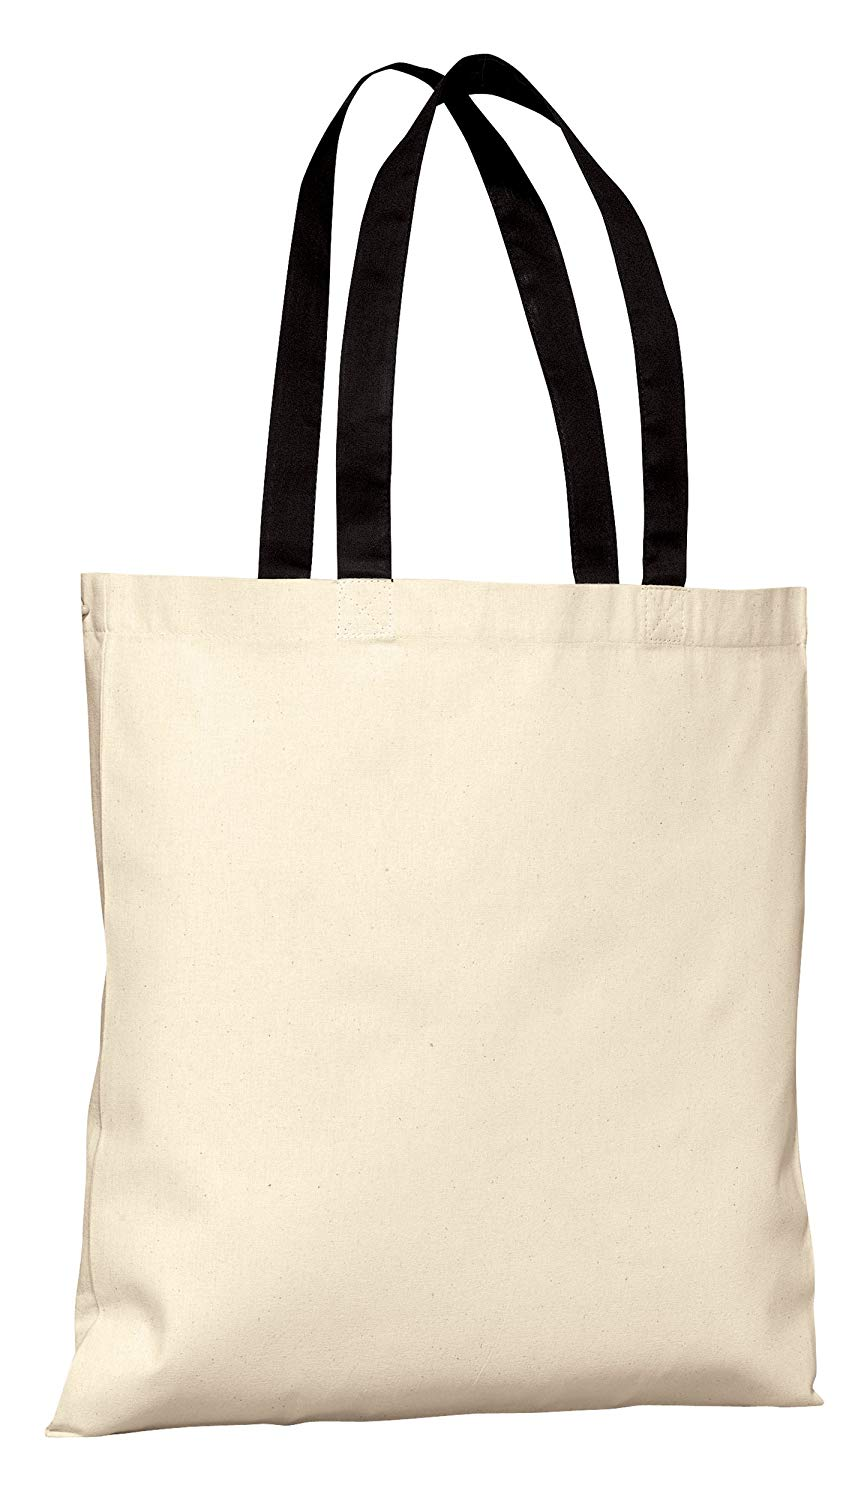 Budget Friendly Reusable 100% Cotton Tote Bag with Color Handles | Cotton Canvas Tote Bags in Bulk | Reusable and Eco Friendly Cotton Tote Bags Wholesale by BagzDepot (12, Black)